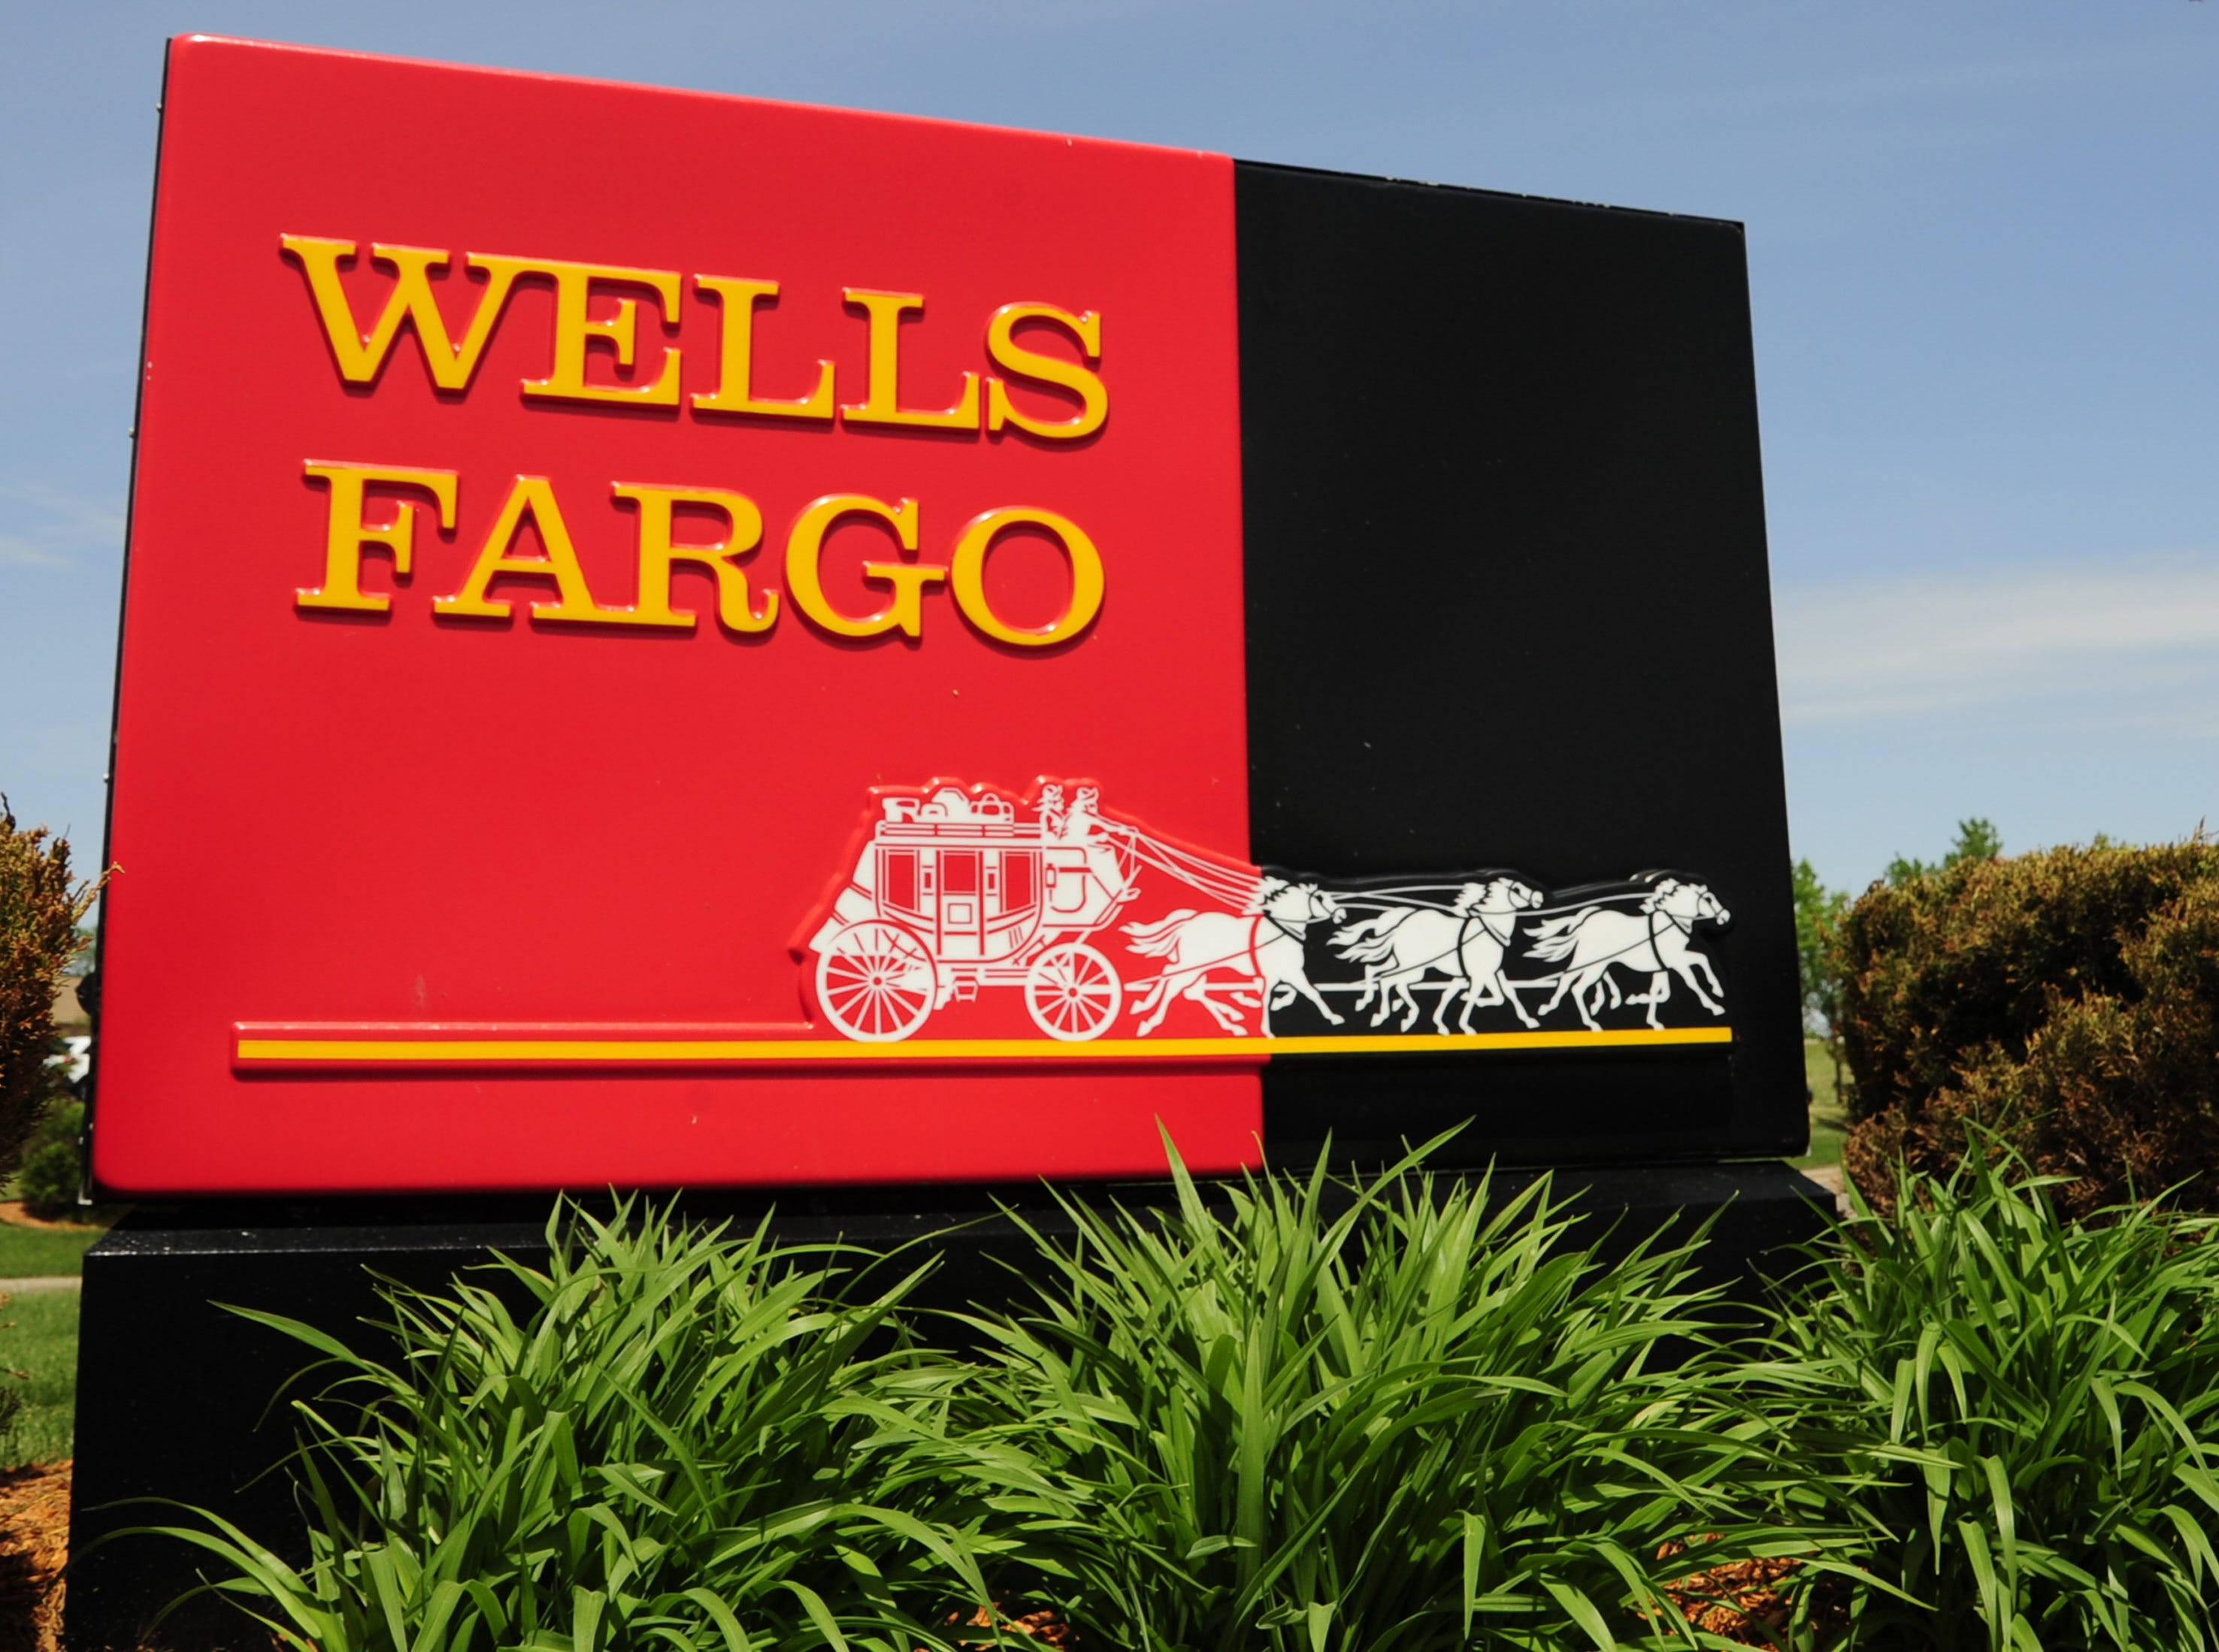 Wells Fargo, hiring 320. The company provides banking and other financial services. More info: wellsfargojobs.com.